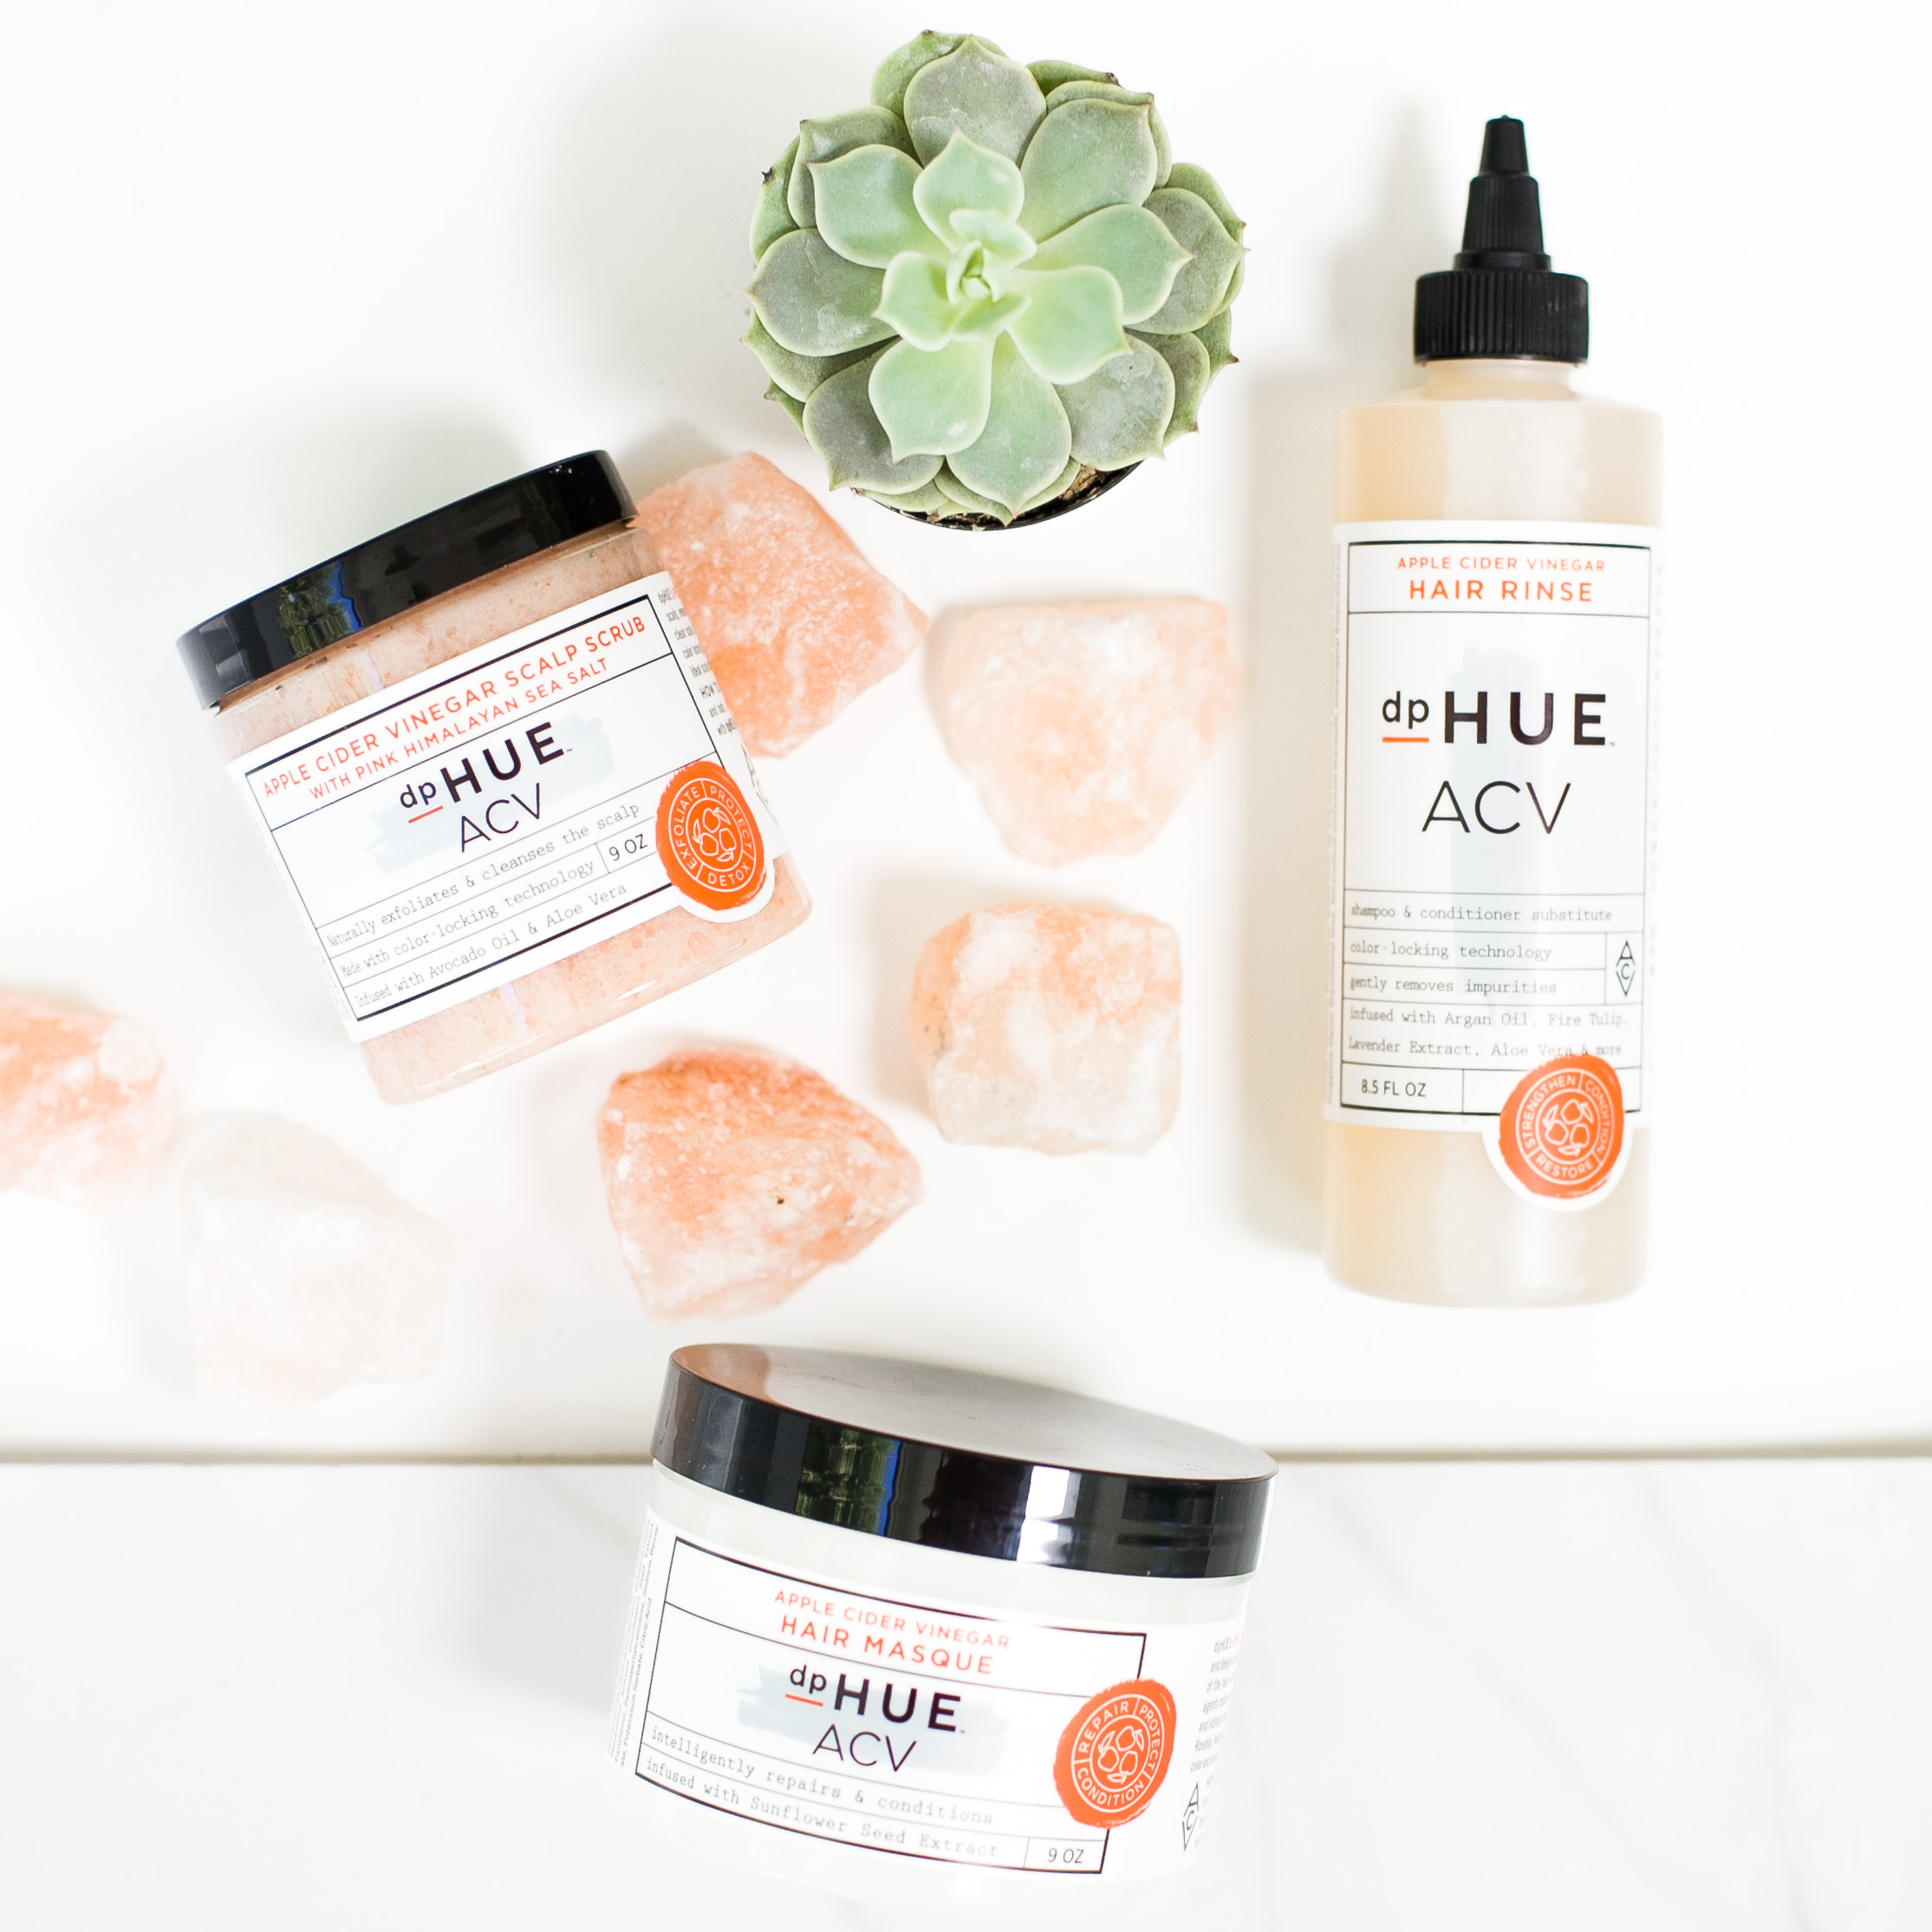 DP Hue Apple cider vinegar scalp scrub in a tub, hair rinse in a squeeze bottle and hair masque in a tub against a white background